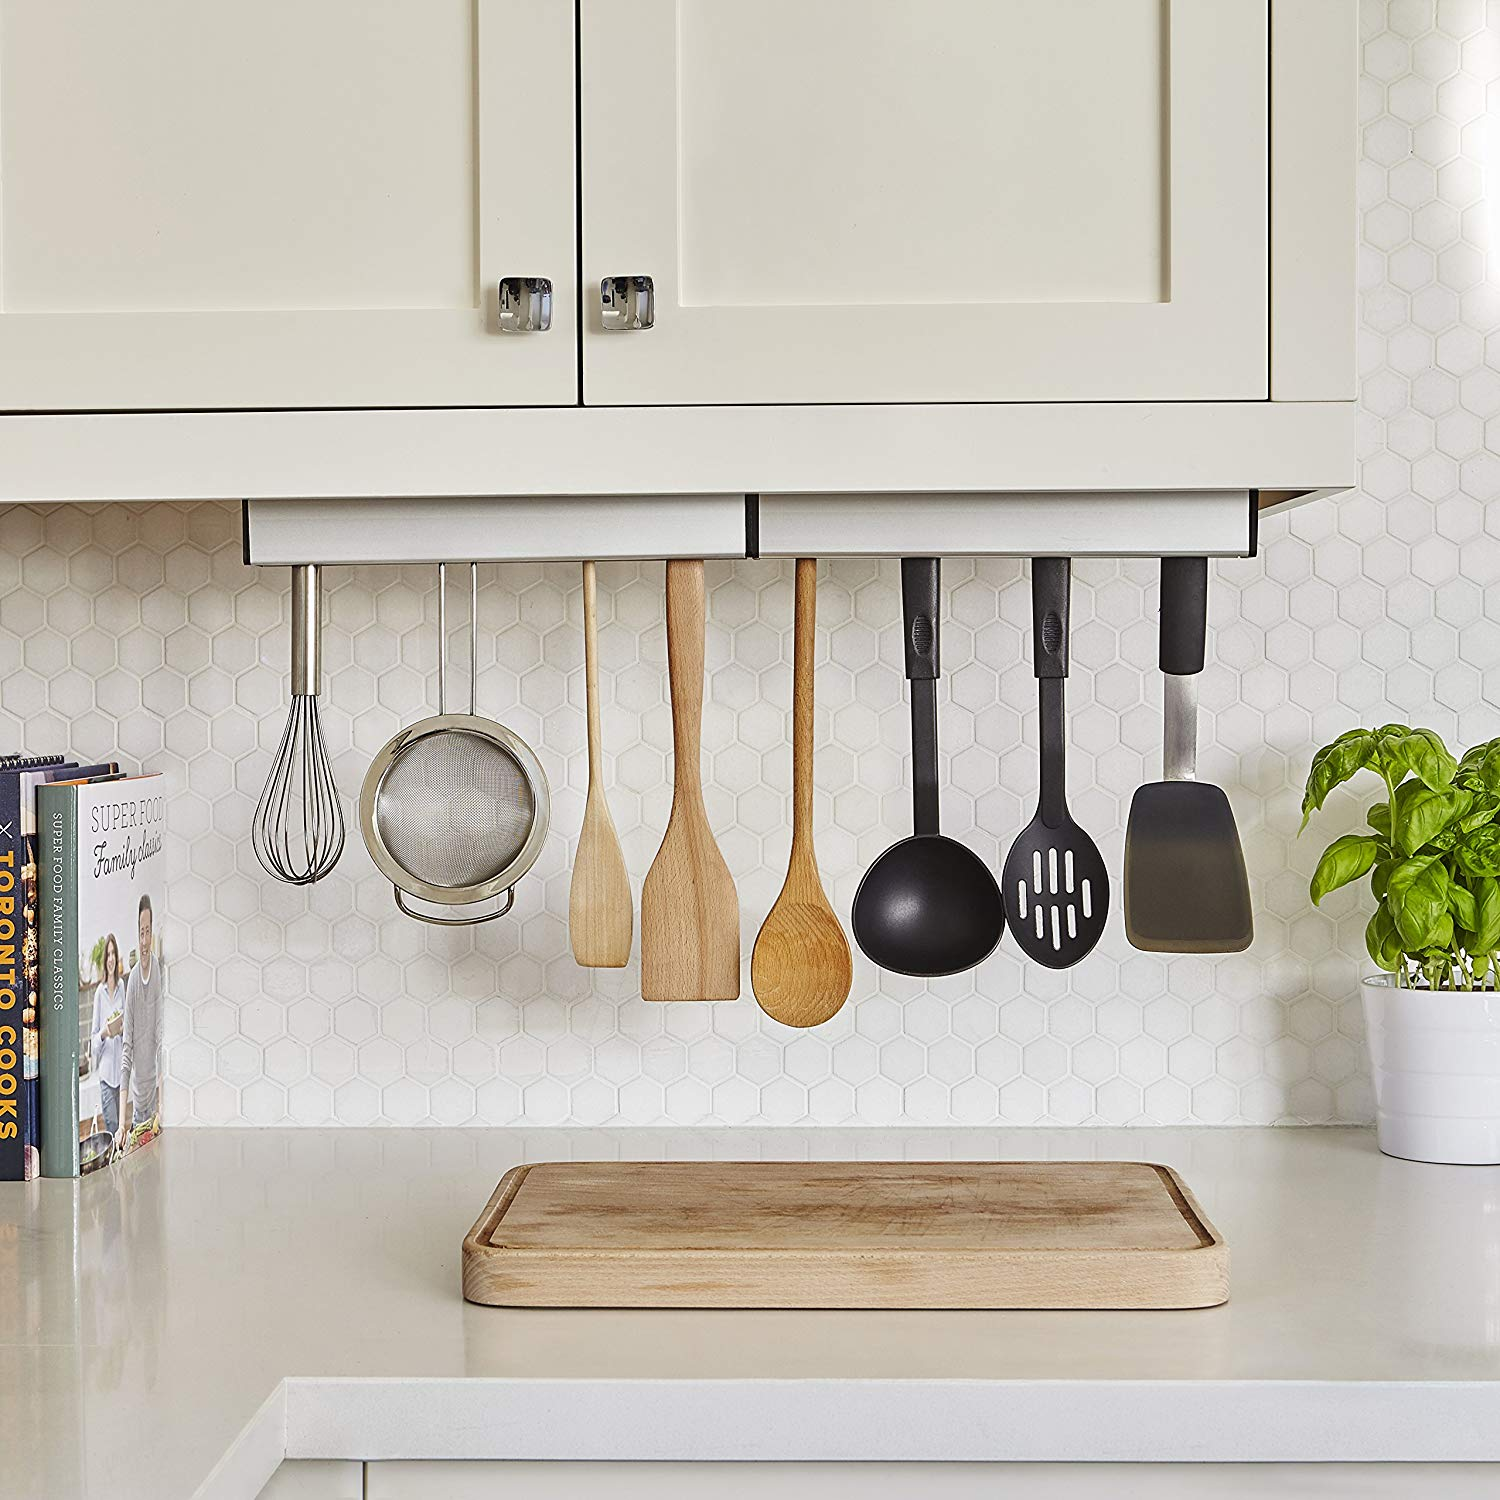 Umbra Float Kitchen Organizer Review | Apartment Therapy